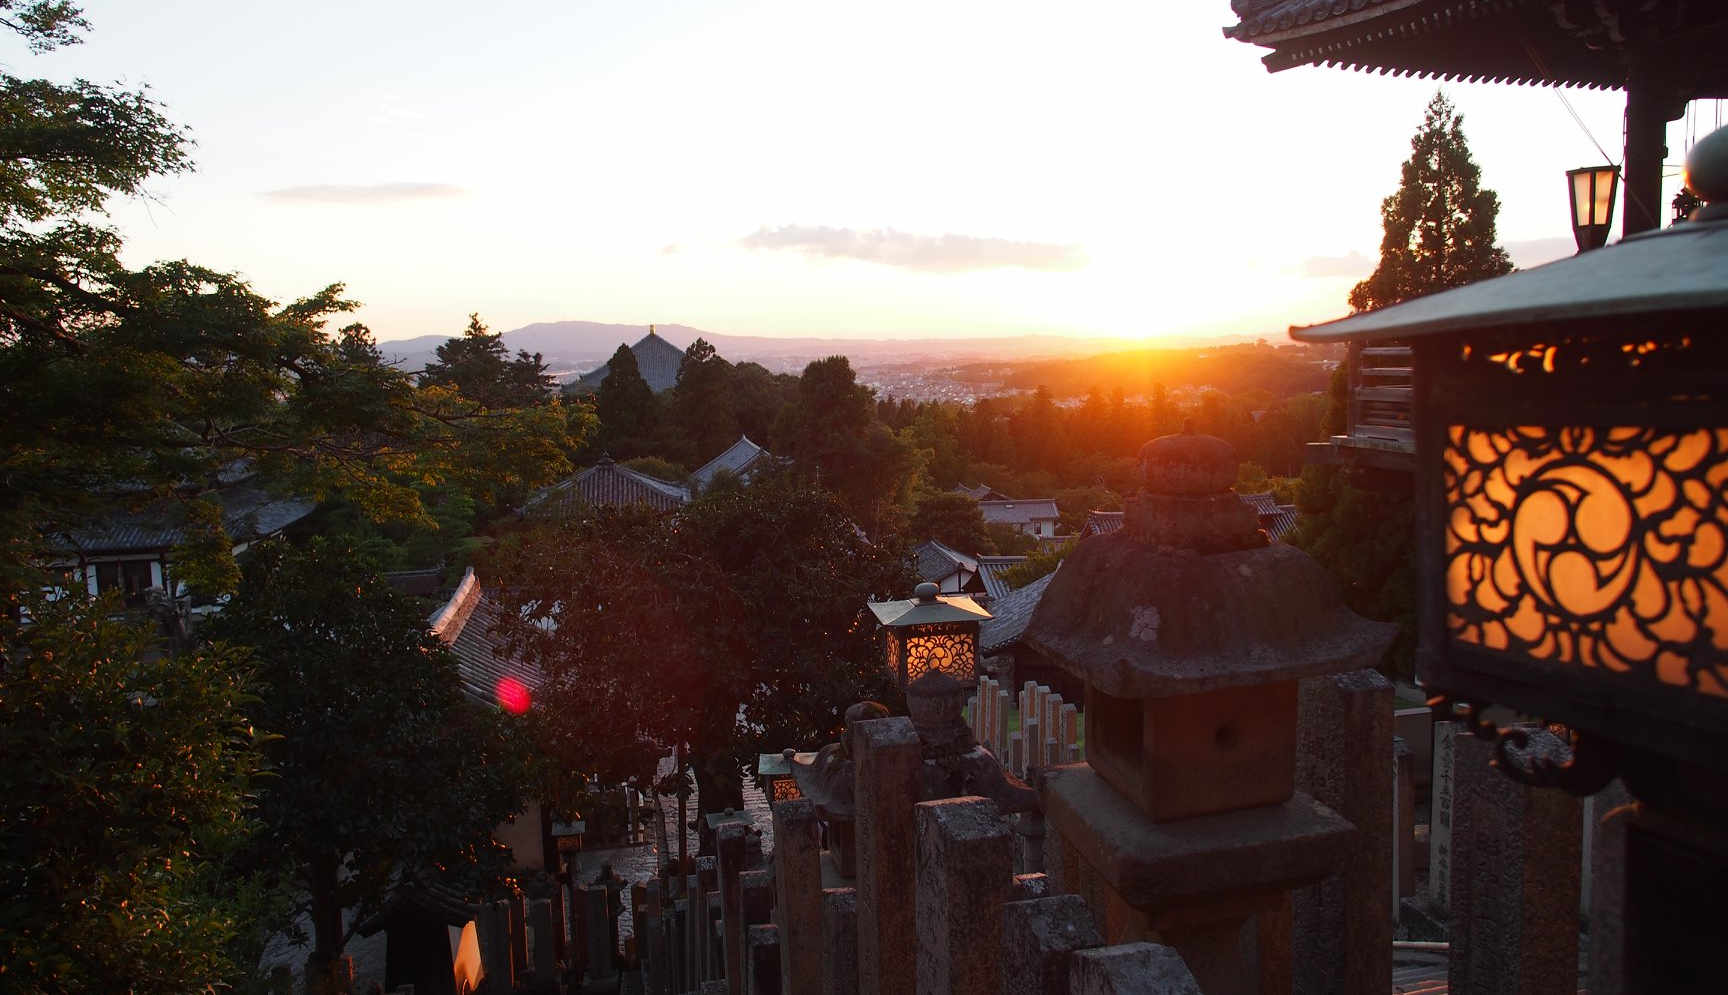 Sunset view from Nigatsudo temple